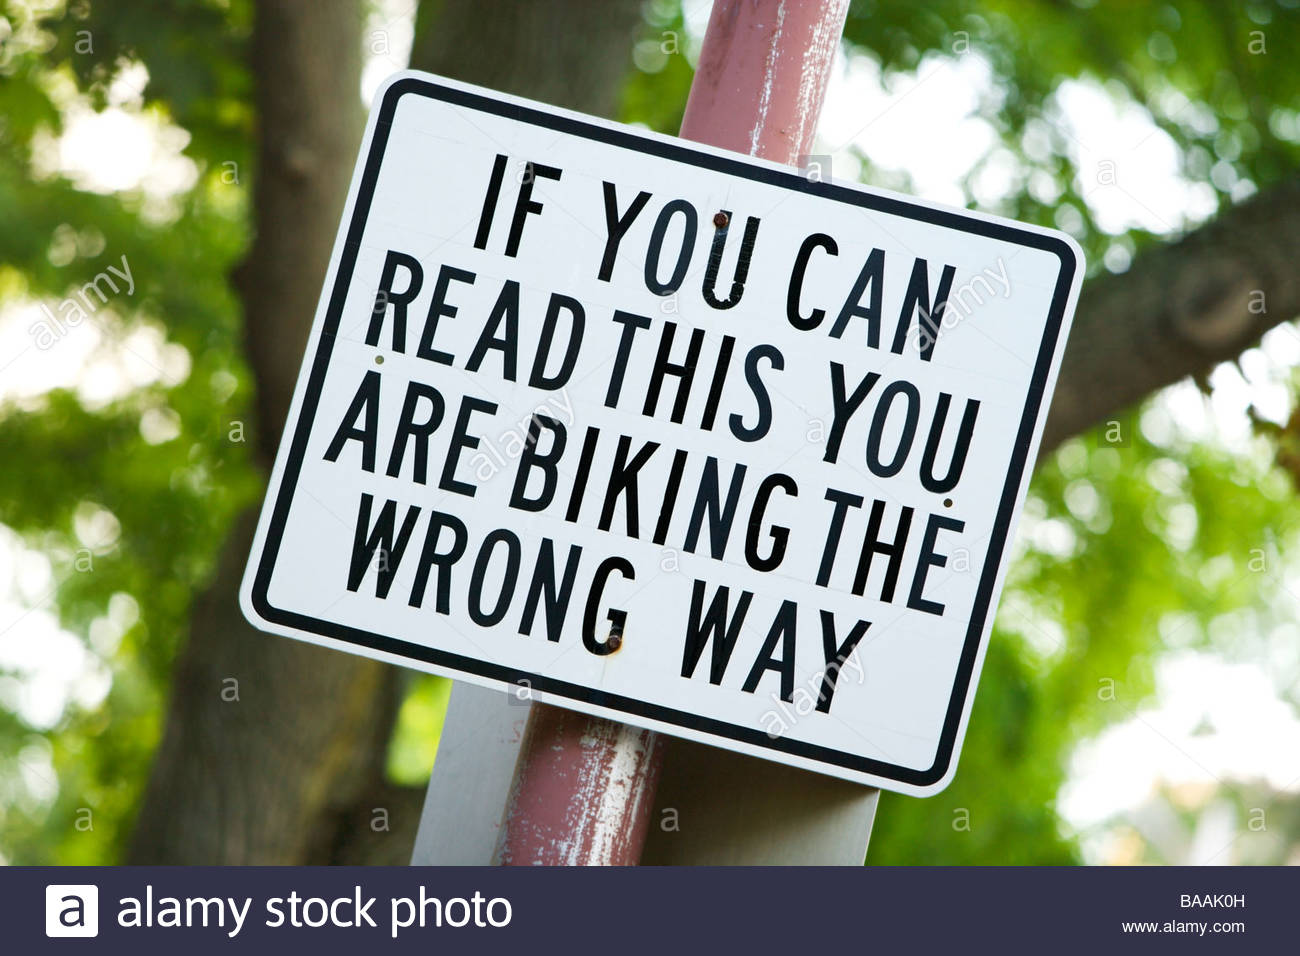 A street sign posted for cyclists warning them that they are riding the wrong way down the street in Boston, Massachusetts. - Stock Image